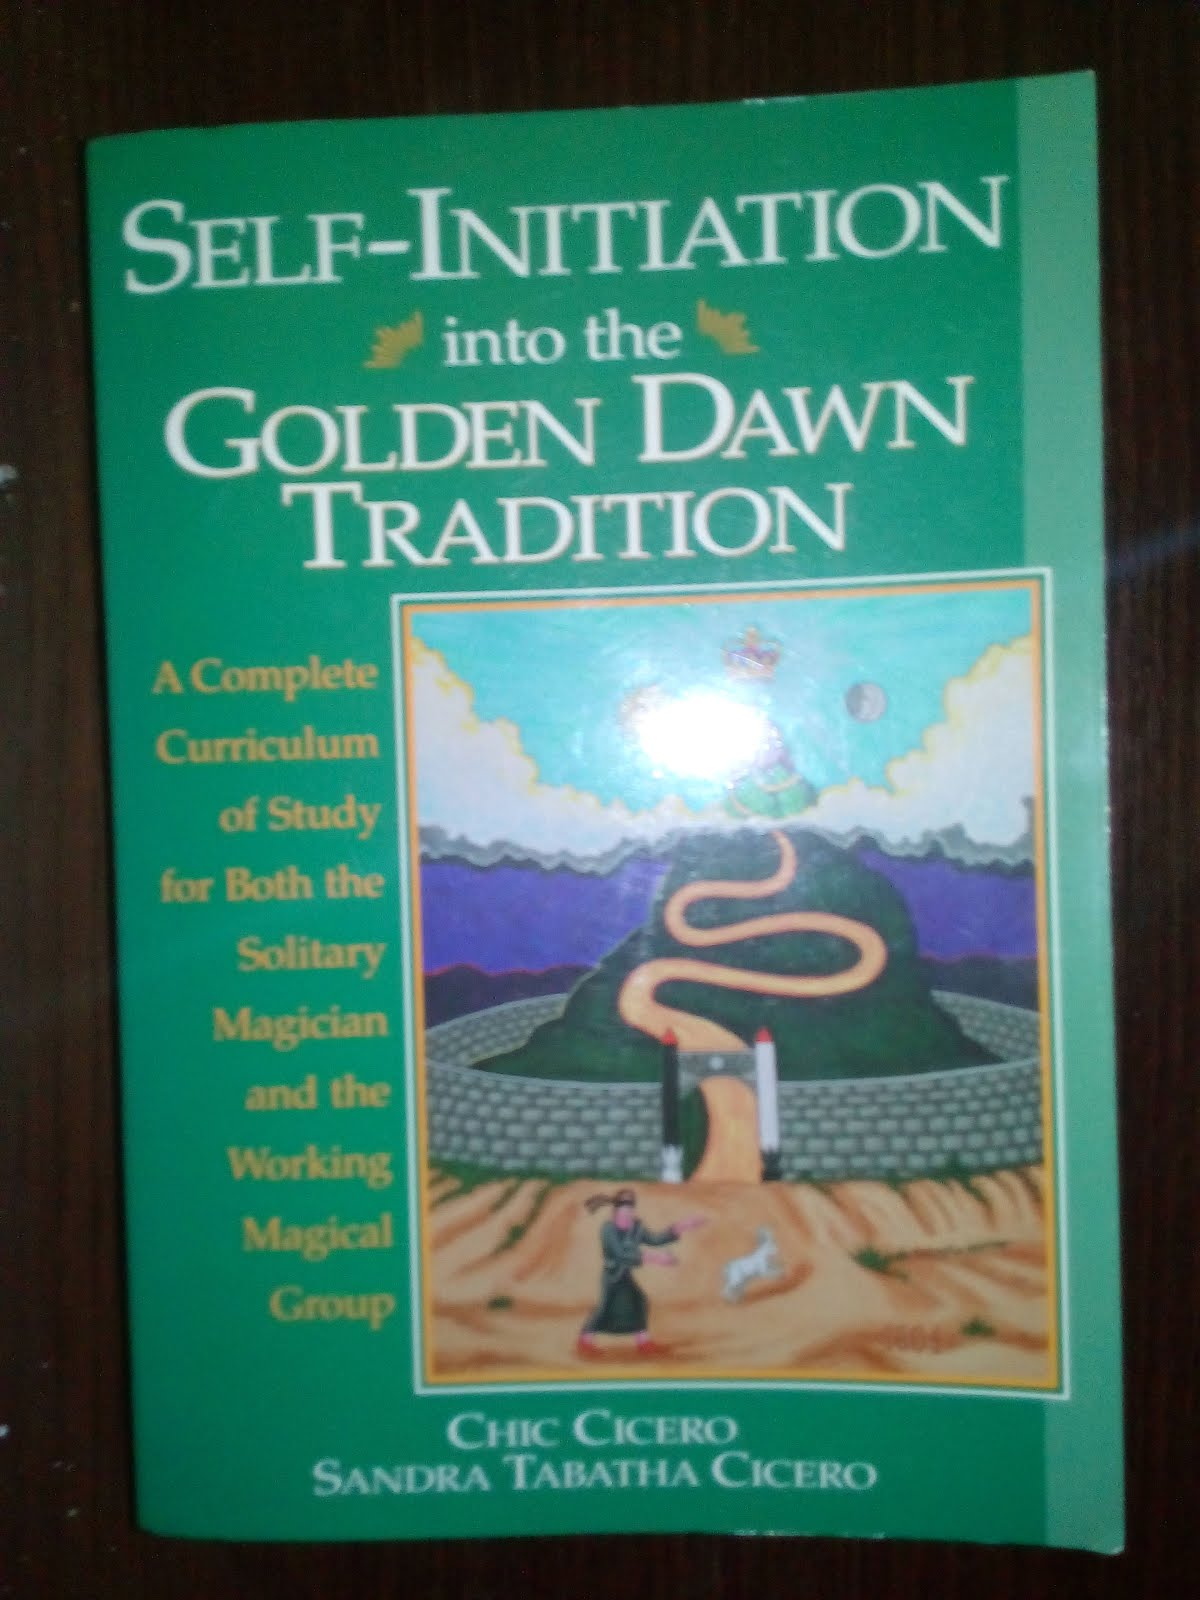 'Self-Initiation into the Golden Dawn Tradition' book by Chic Cicero & Sandra Tabatha Cicero.